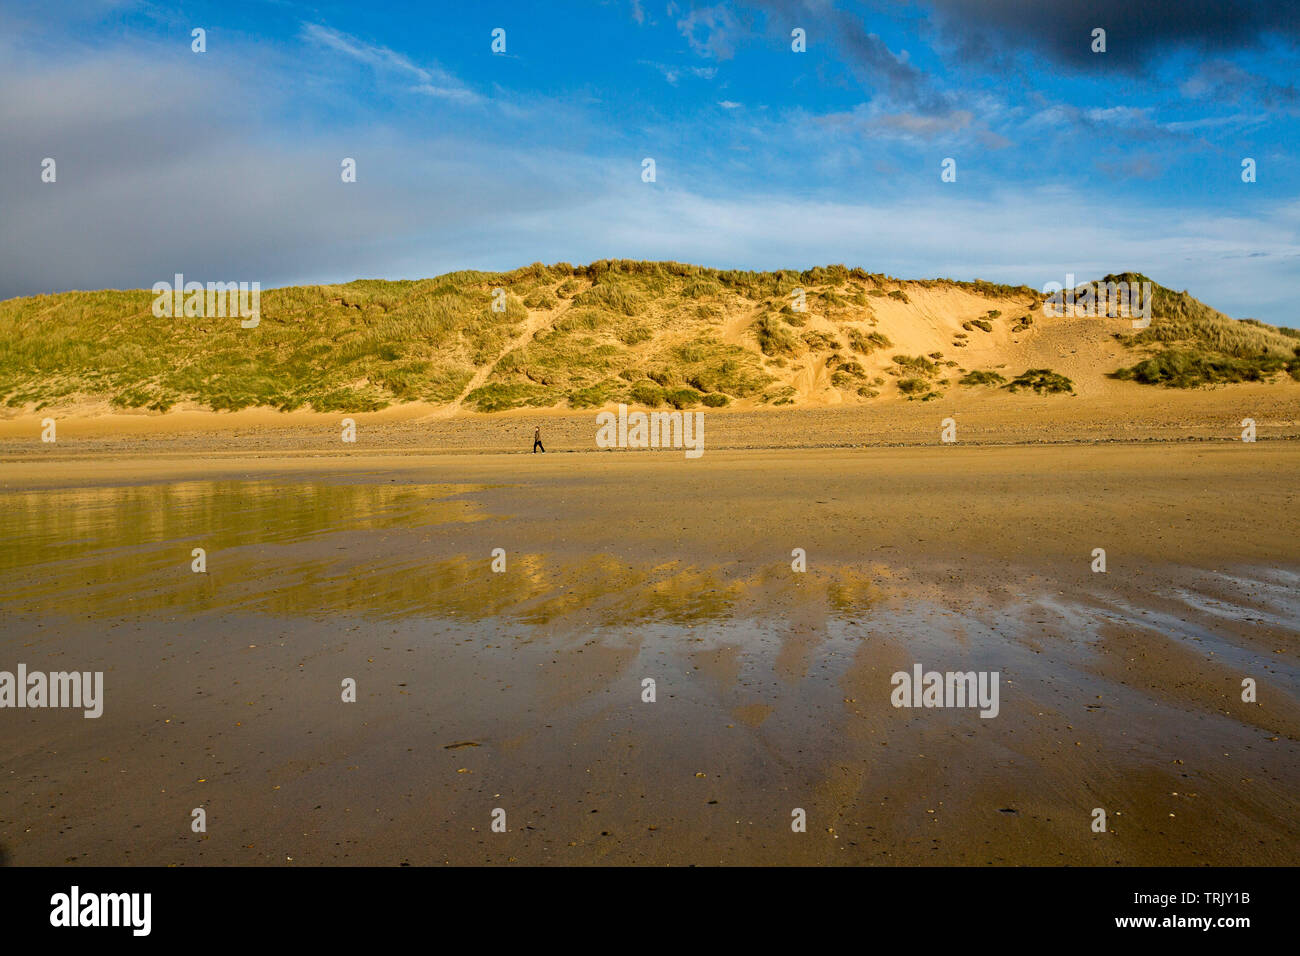 Solitary walker dwarfed by high sand dunes under blue sky that's reflected in water of receding tide at beach at Dunnet Bay, Caithness Scotland - Stock Image